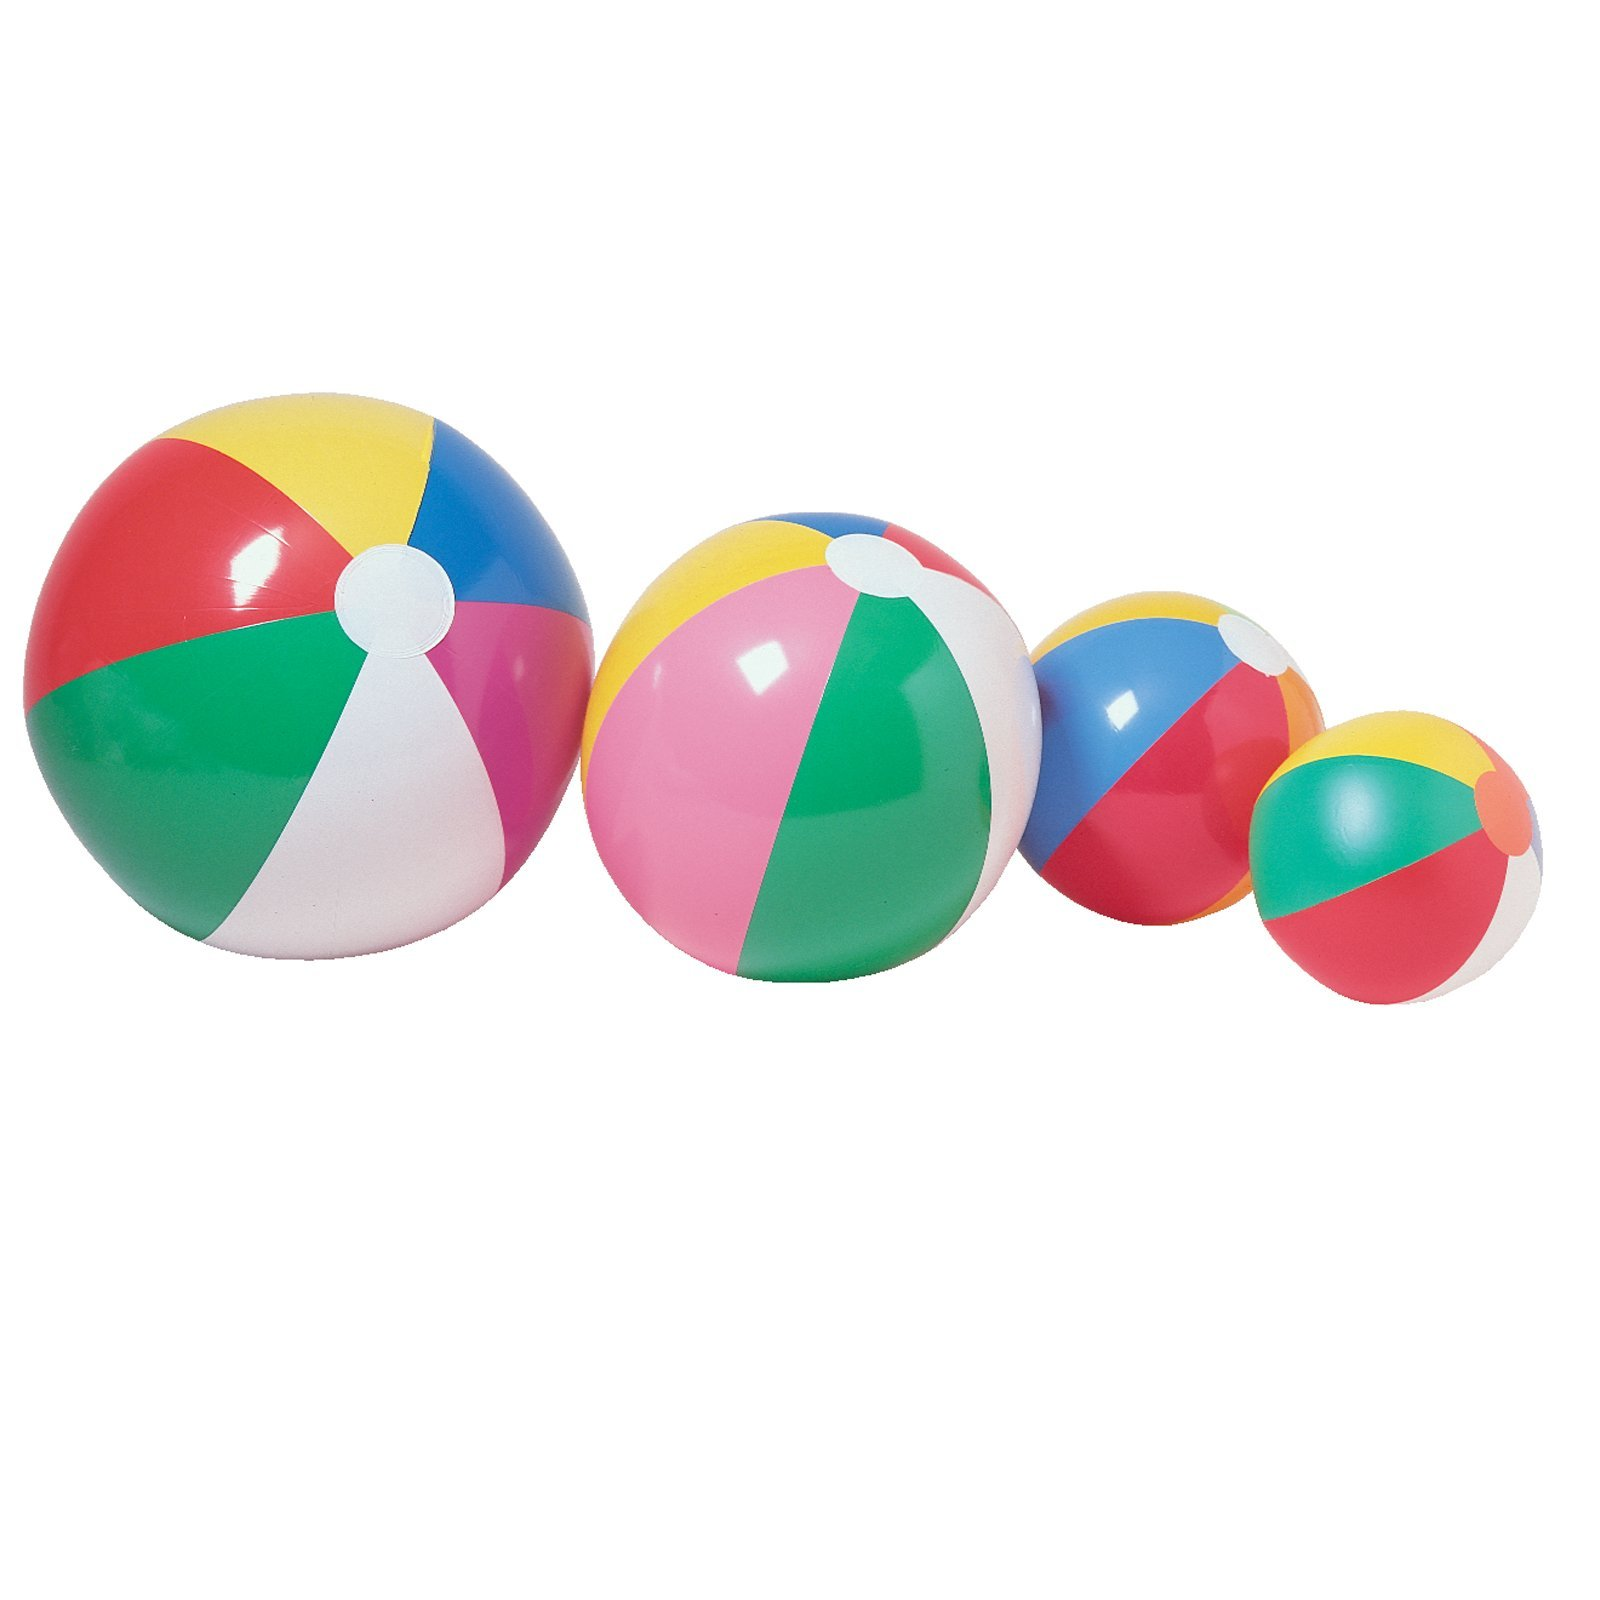 One Inflatable Beach Ball 12'' Party Supplies